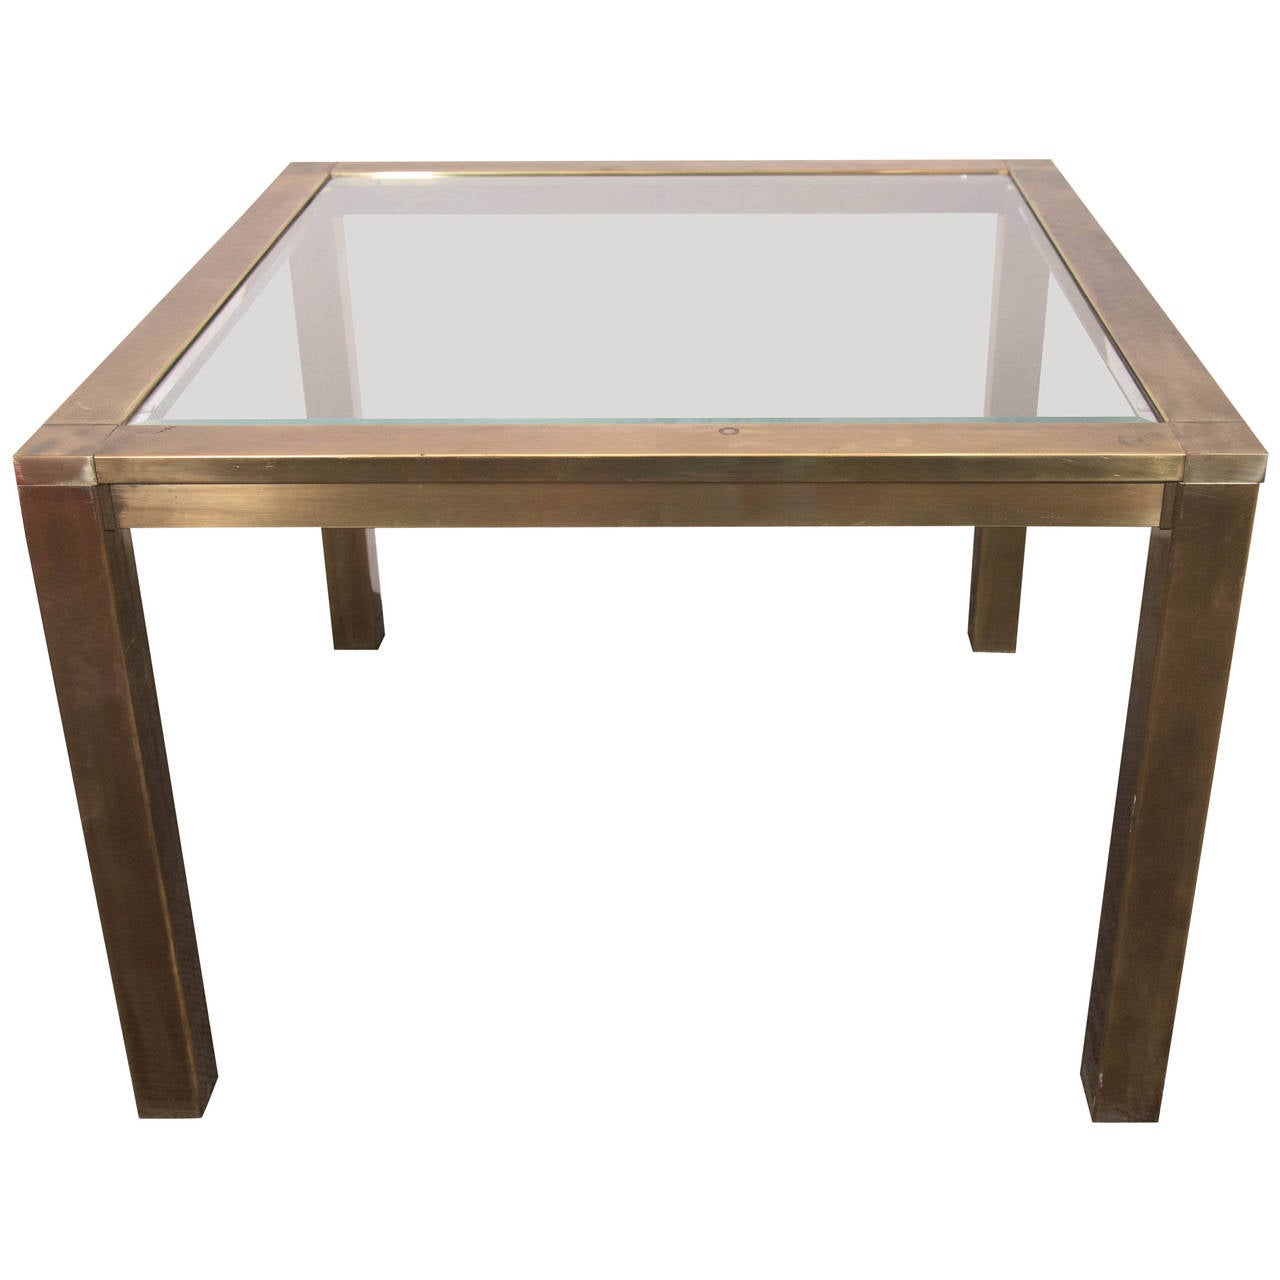 Mastercraft brass side and end table with glass top at 1stdibs for Glass end tables